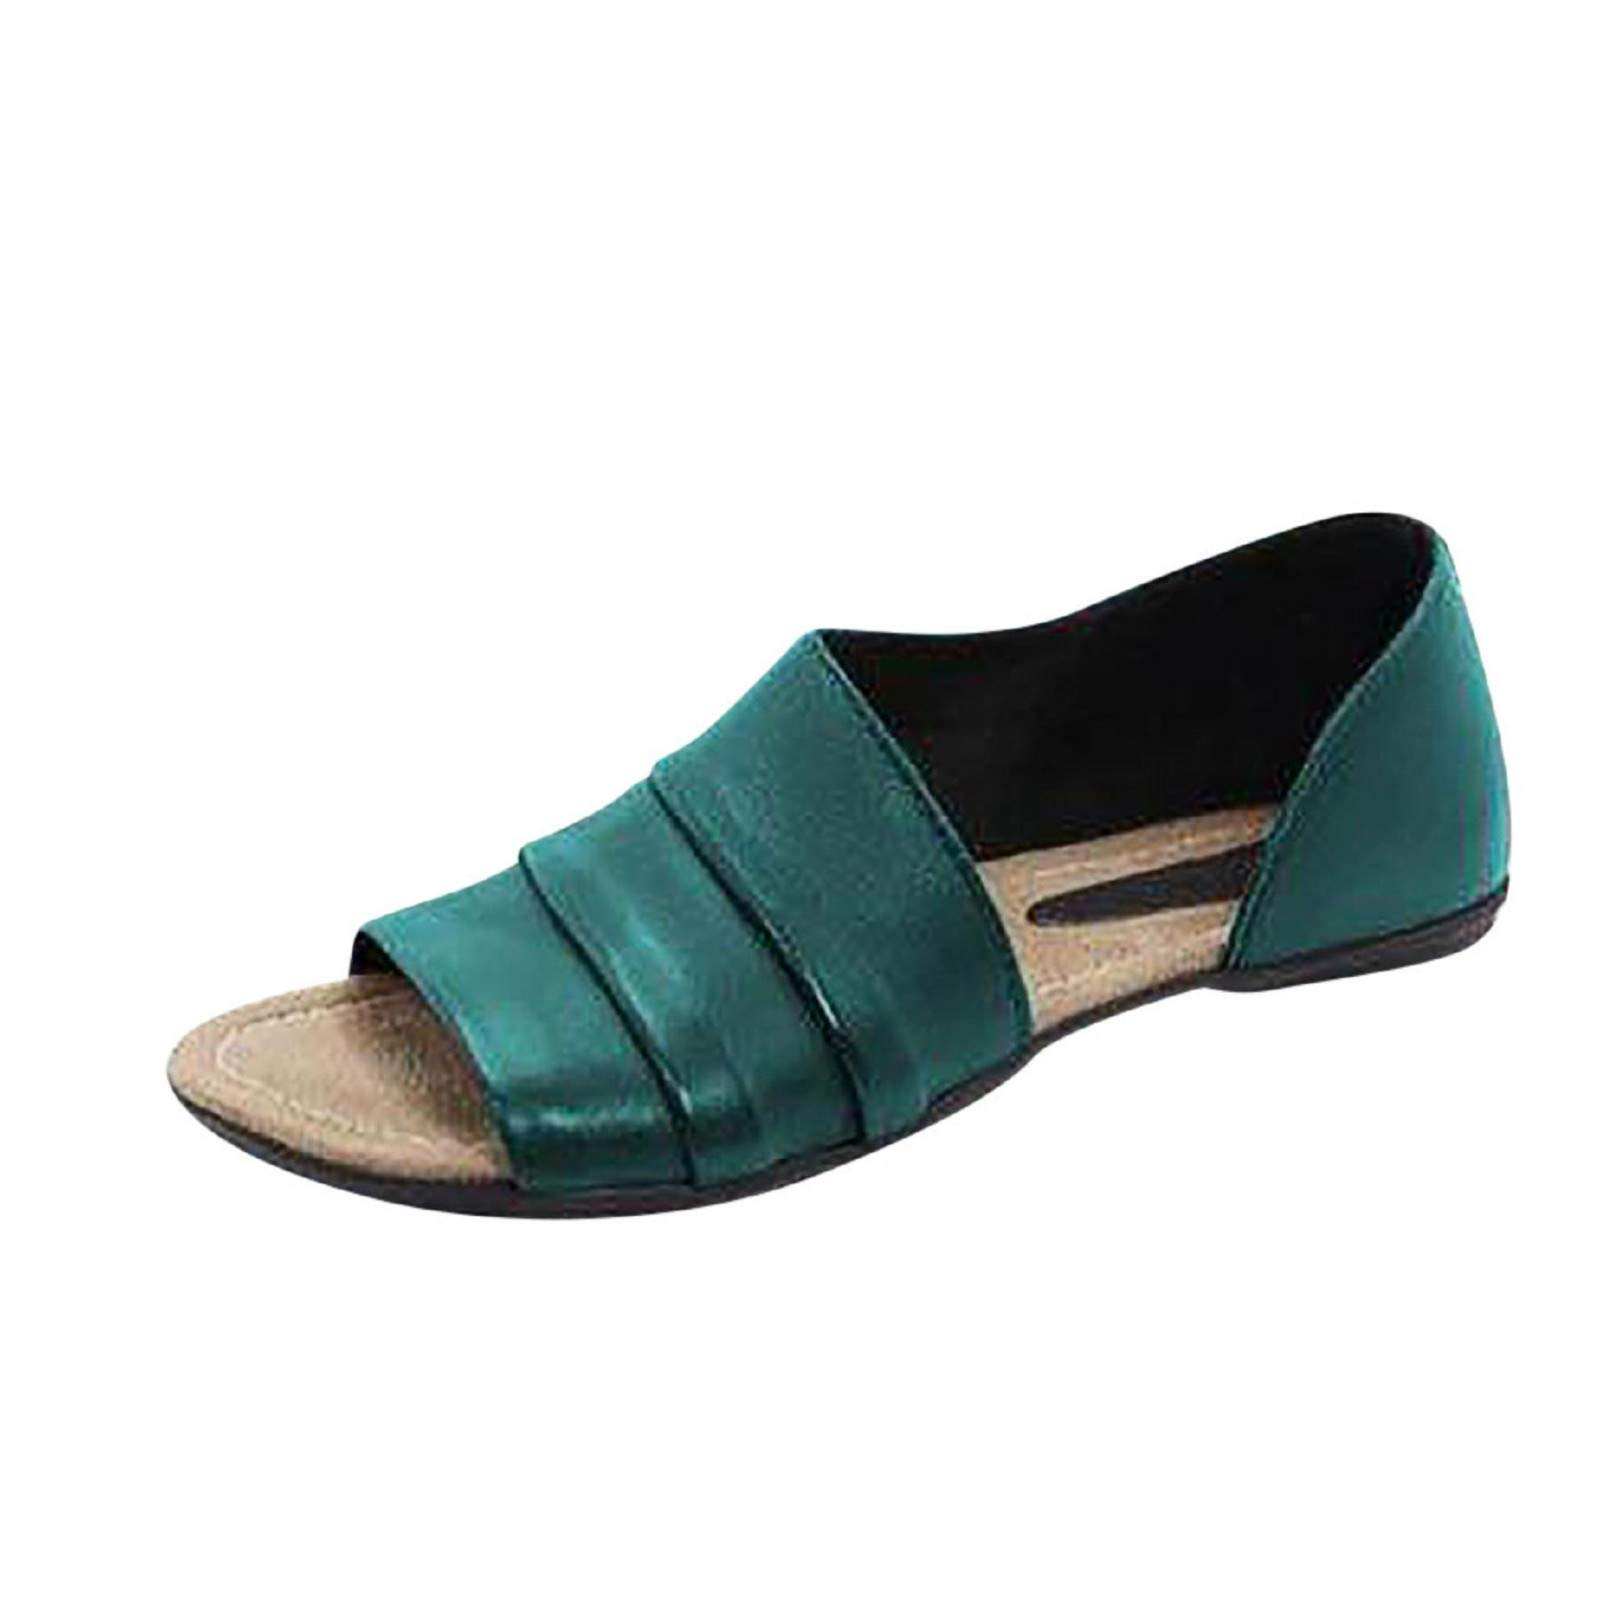 Womens Peep Toe Side Cutout D'Orsay Shoes Summer Slip on Sandals Slides Slippers Army Green